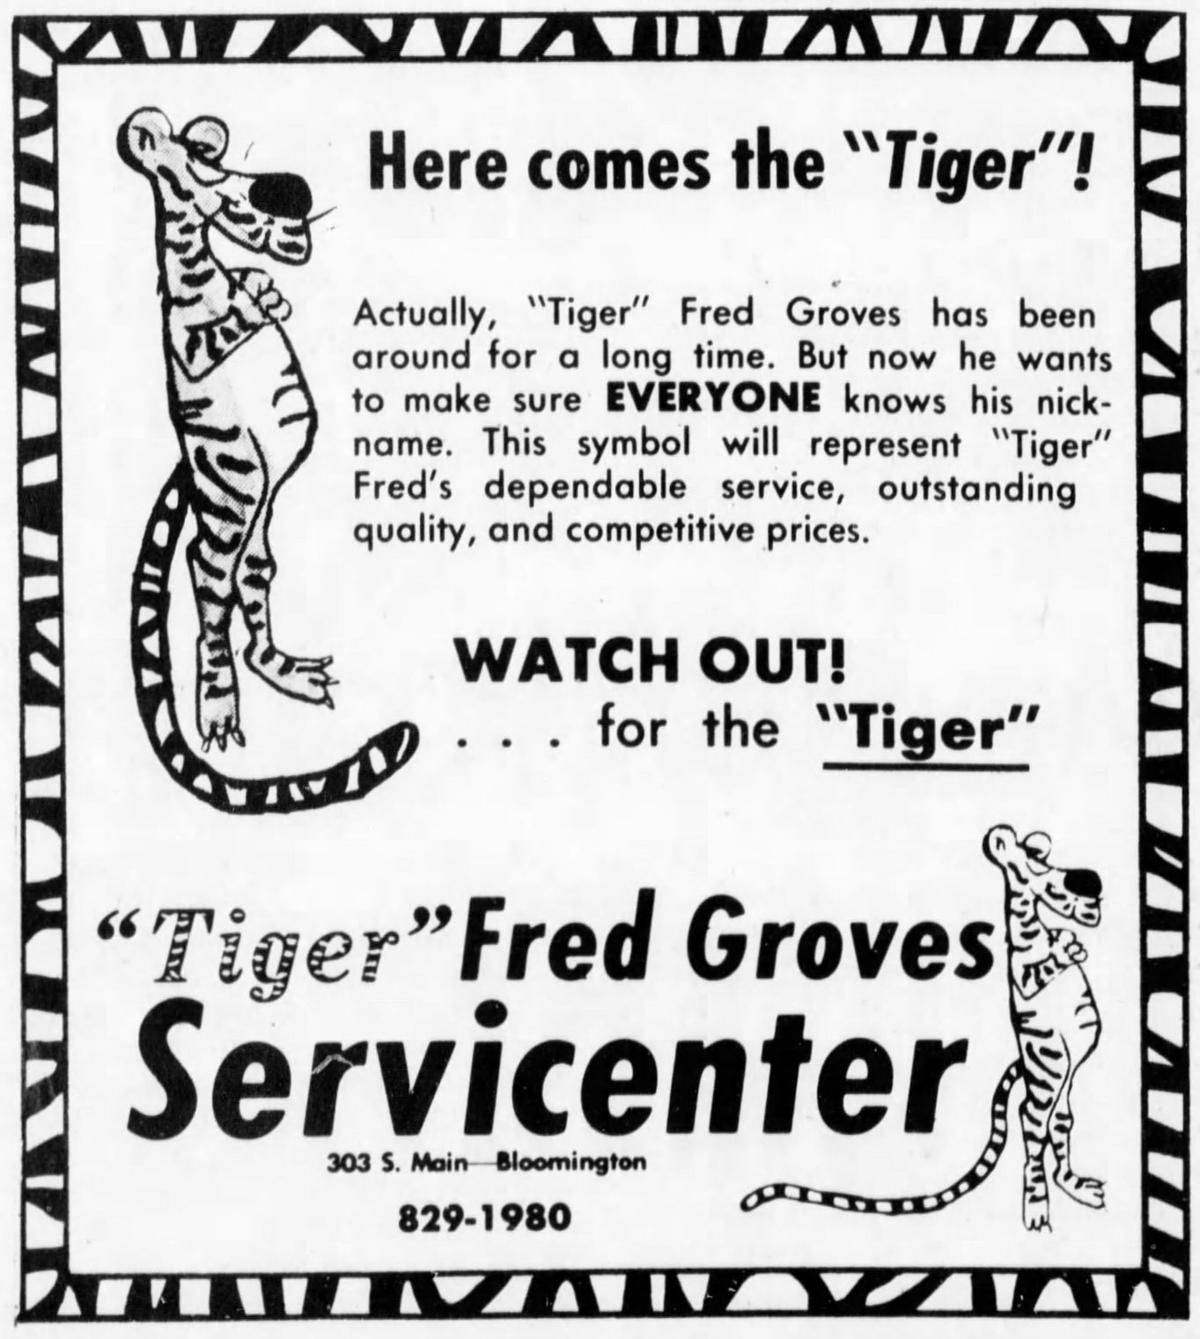 Fred Groves 1976 Pantagraph advertisement